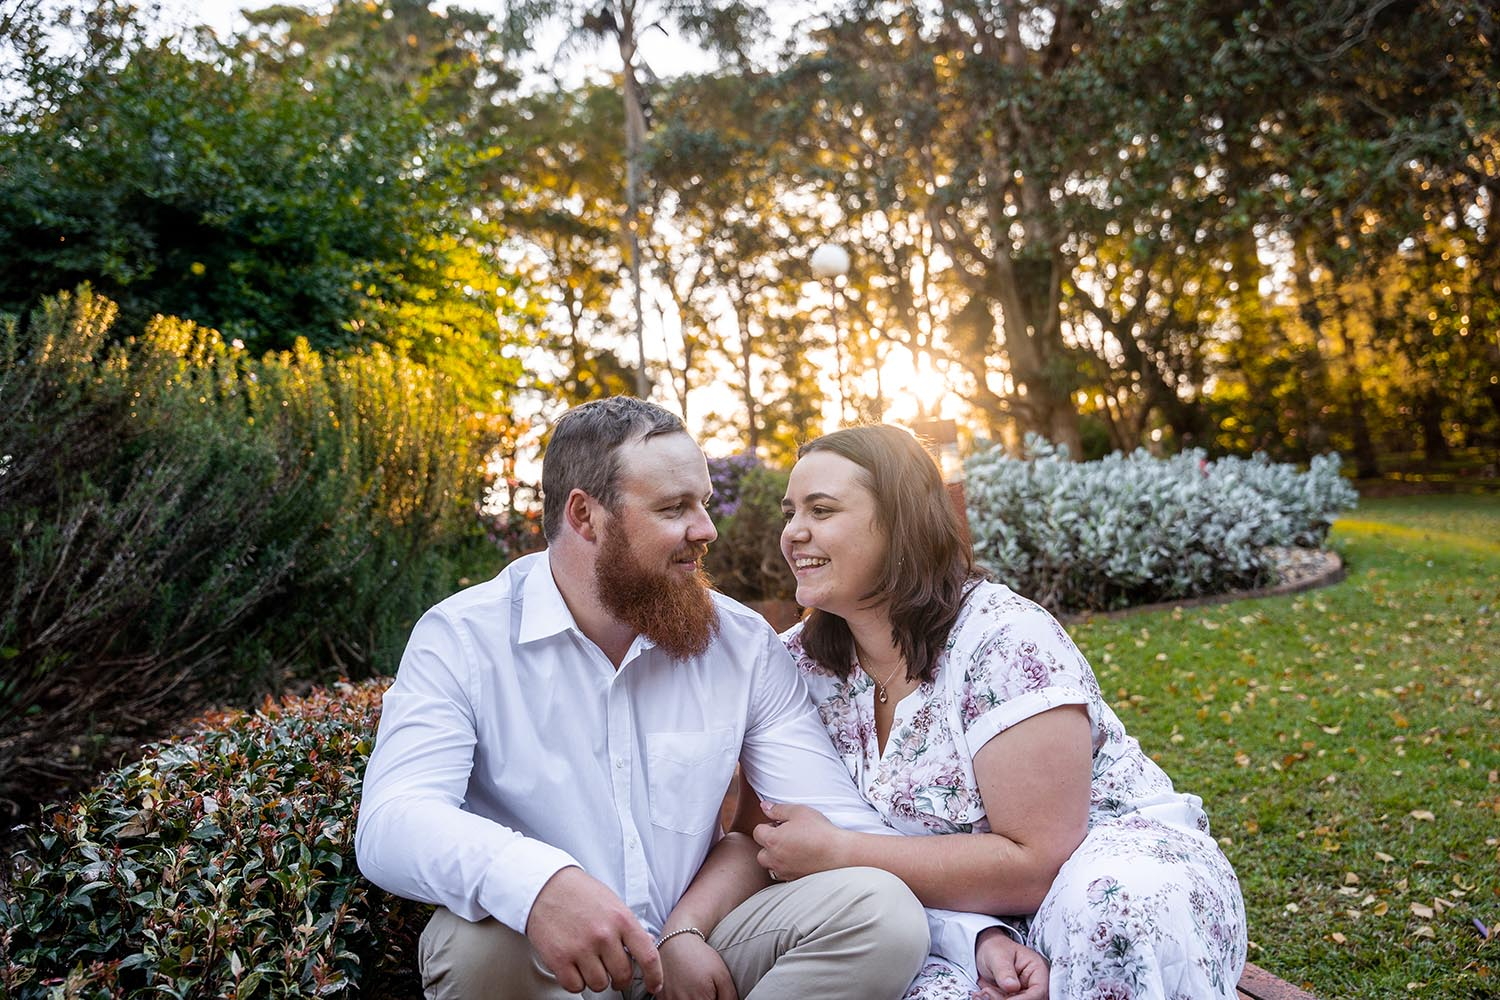 Family Photography - Couple smiling